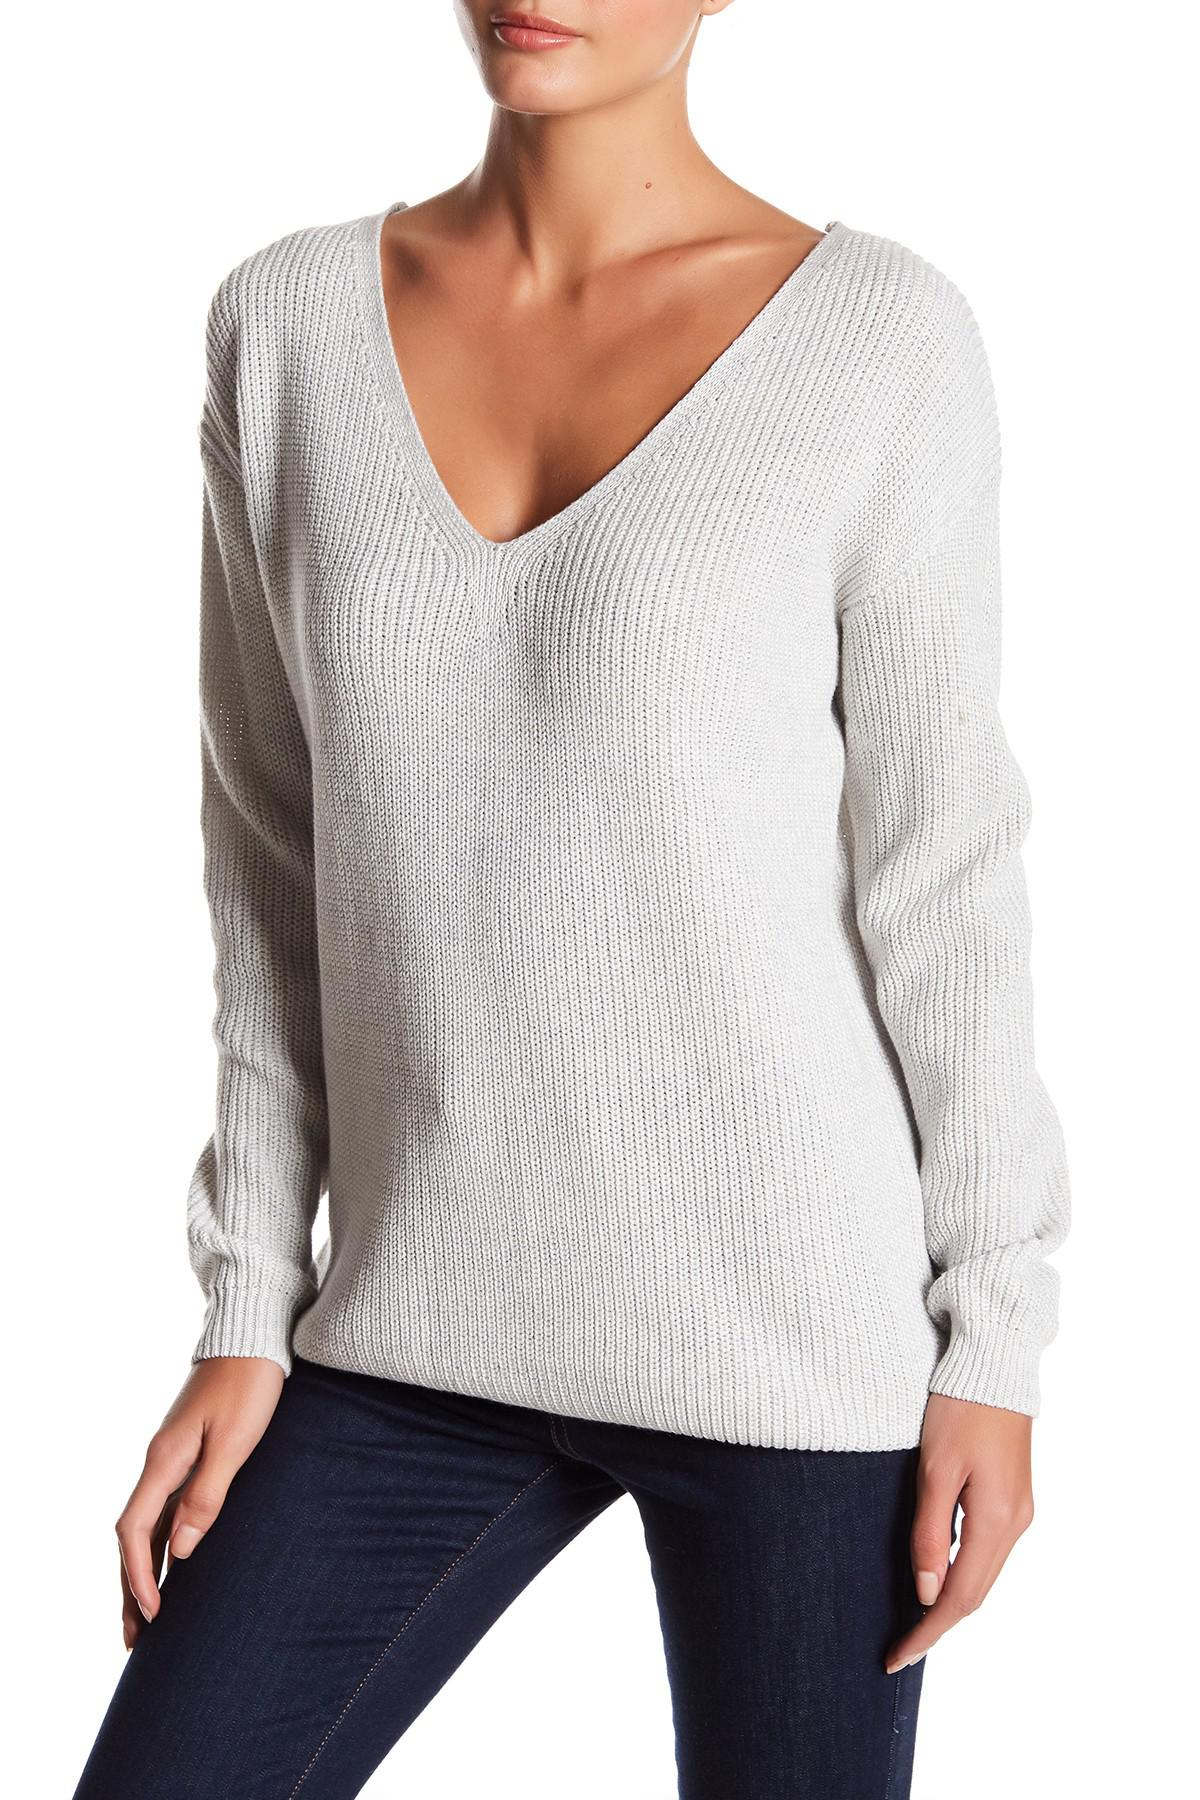 a980cdd708 Lyst - Fate Knit Lace-up Back Sweater in Gray